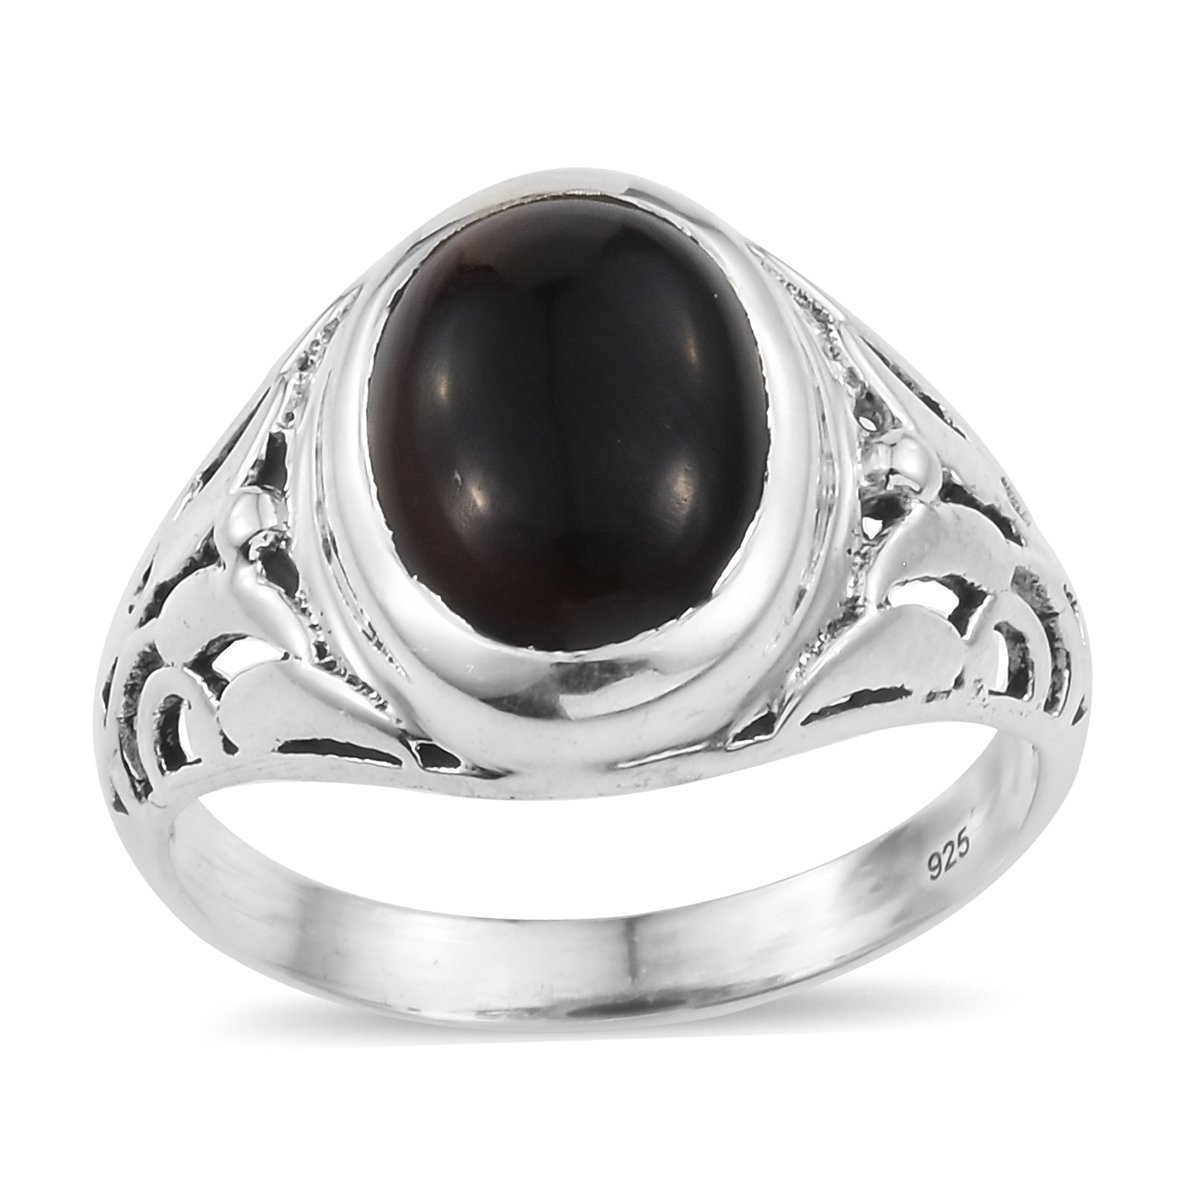 925 Sterling Silver Oval Black Onyx Fashion Ring For Women Size 9